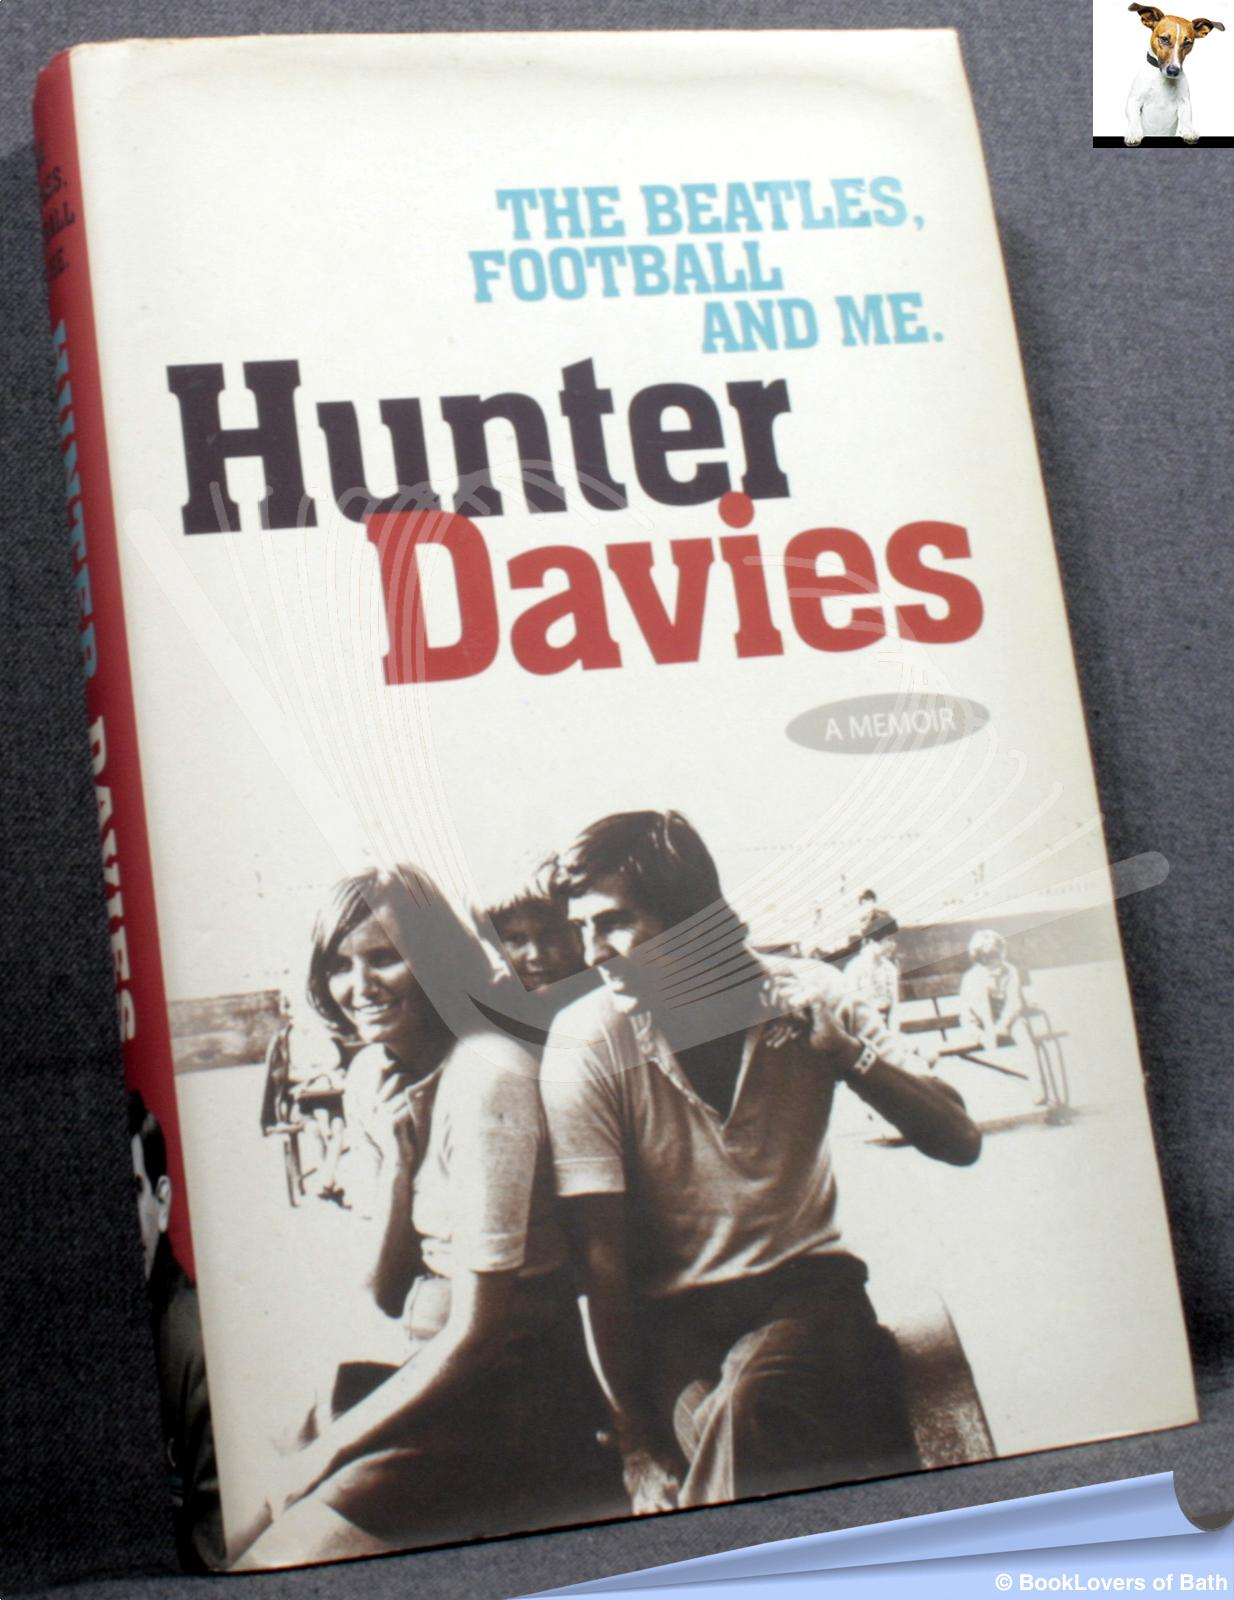 The Beatles, Football and Me - Hunter Davies